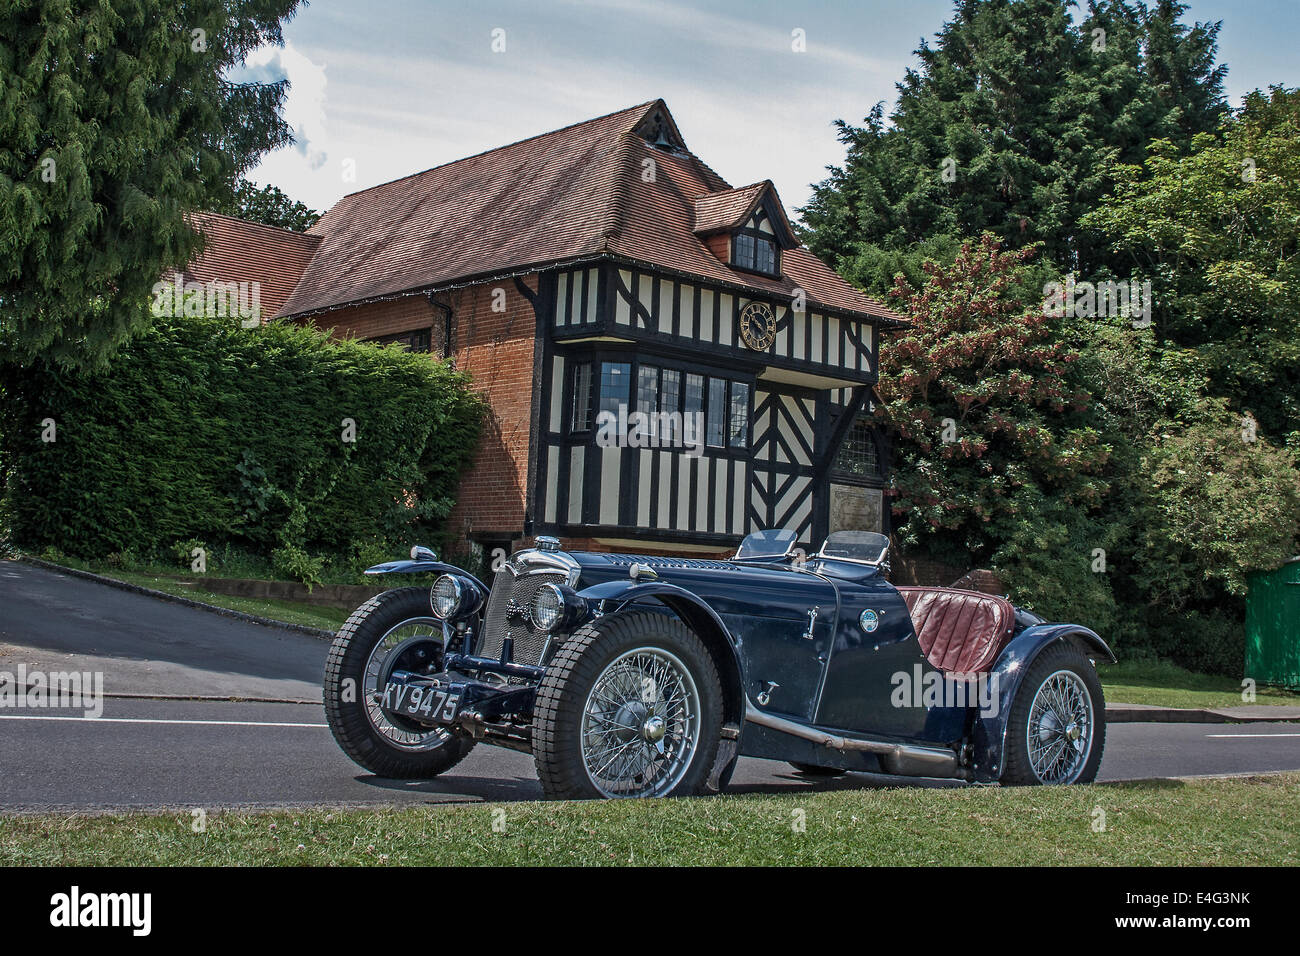 1934 Riley Ulster Imp sports car parked beside the village green in Tilford, Surrey, Farnham, United Kingdom. - Stock Image